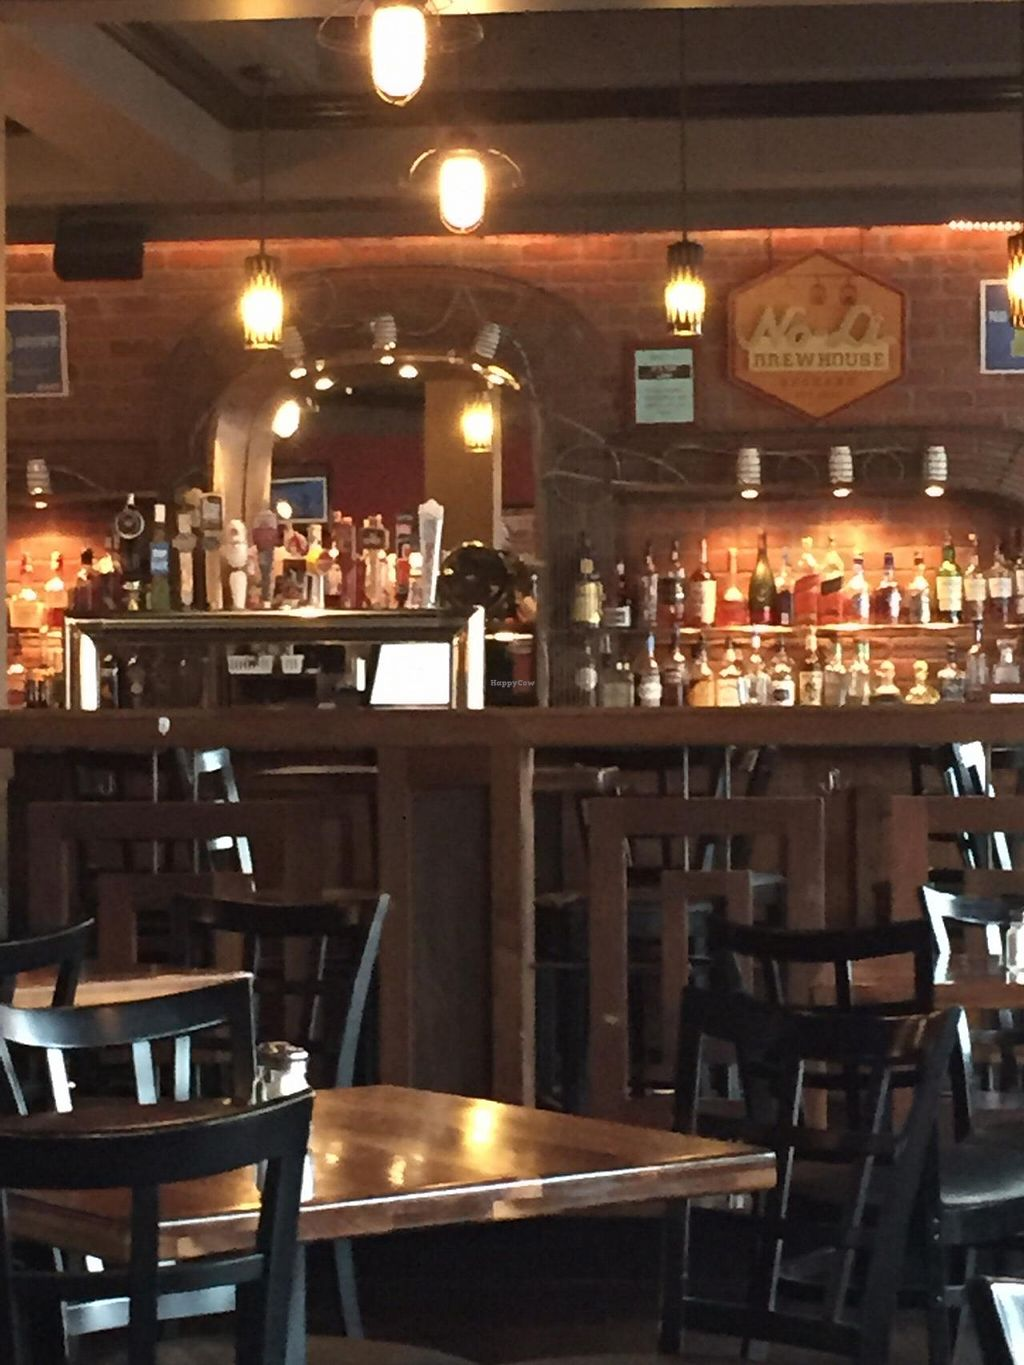 """Photo of Saranac Public House  by <a href=""""/members/profile/HeatherMeese"""">HeatherMeese</a> <br/>Beautiful atmosphere <br/> February 7, 2015  - <a href='/contact/abuse/image/55495/92528'>Report</a>"""